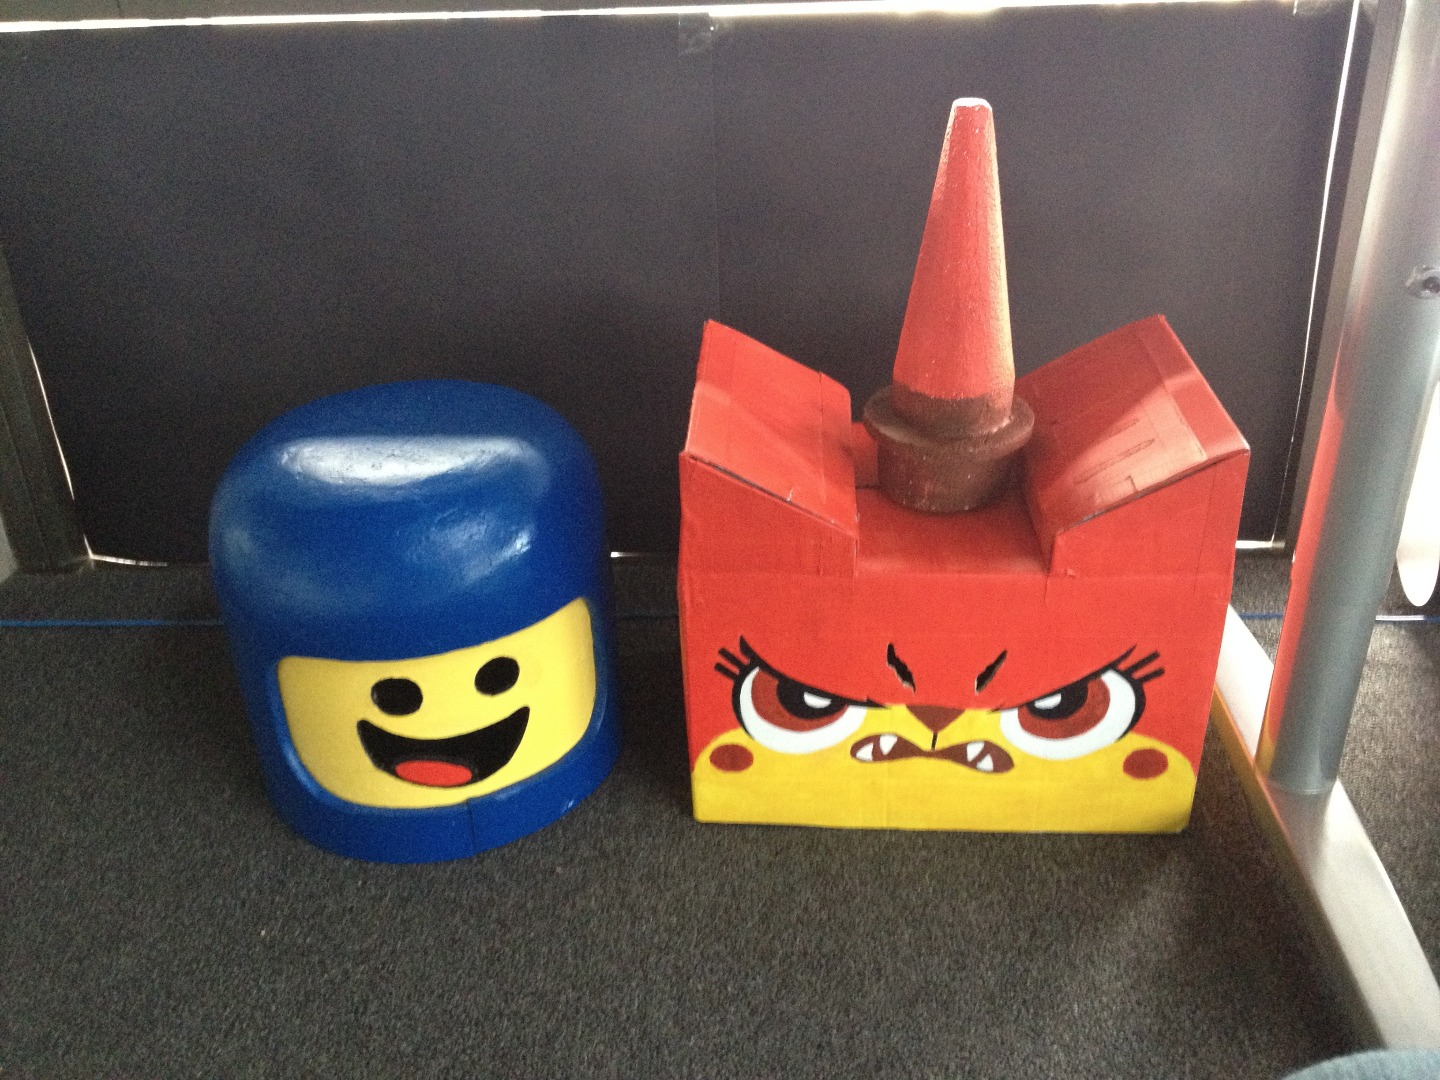 Picture of Lego Movie Masks:  Benny the Spaceman and Angry Unikitty